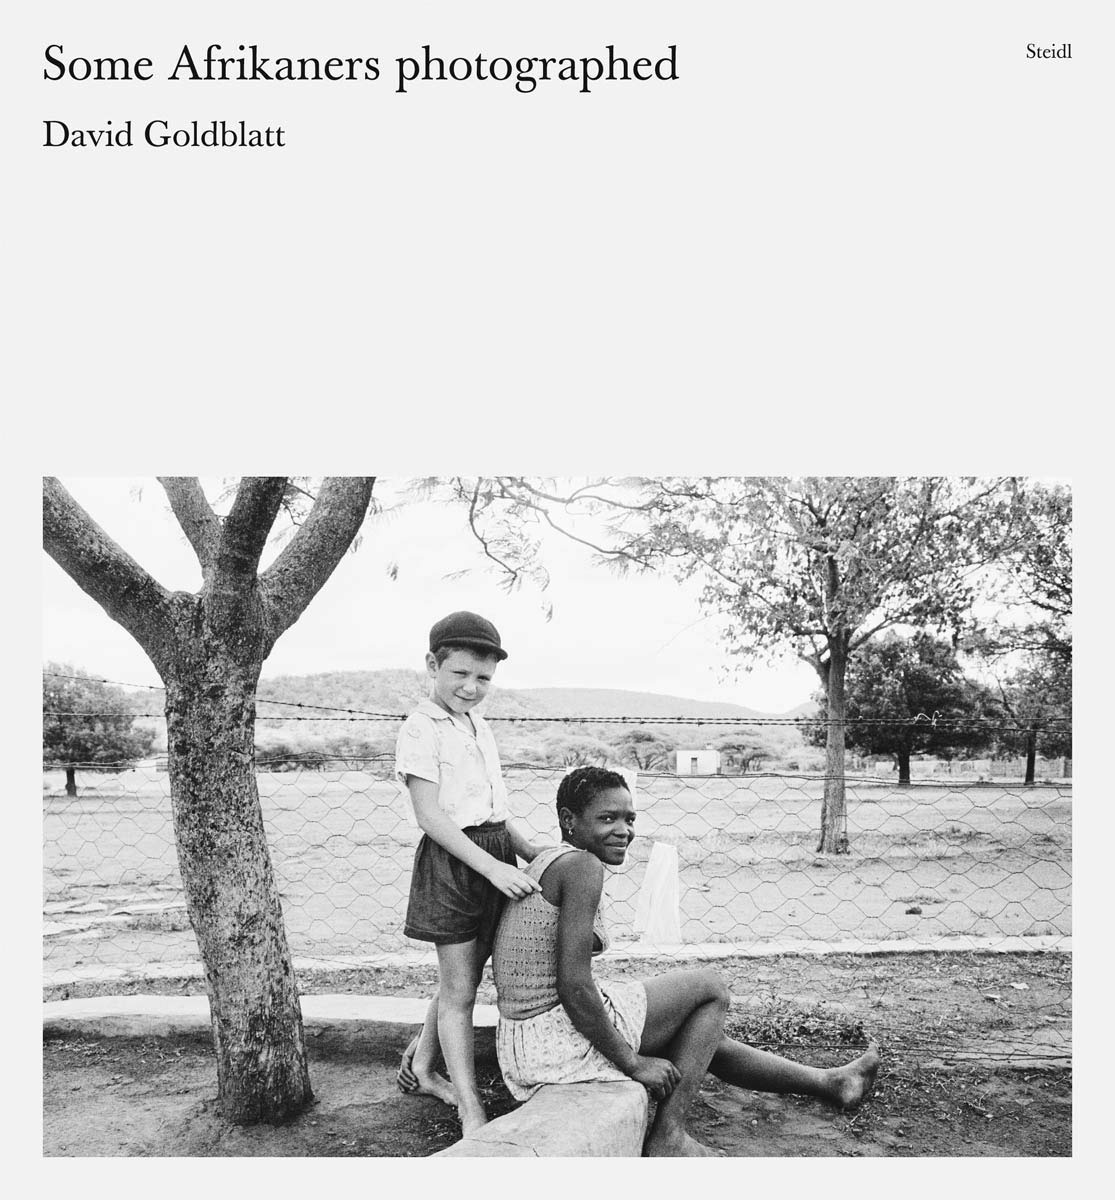 Some Afrikaners Photographed (1975)